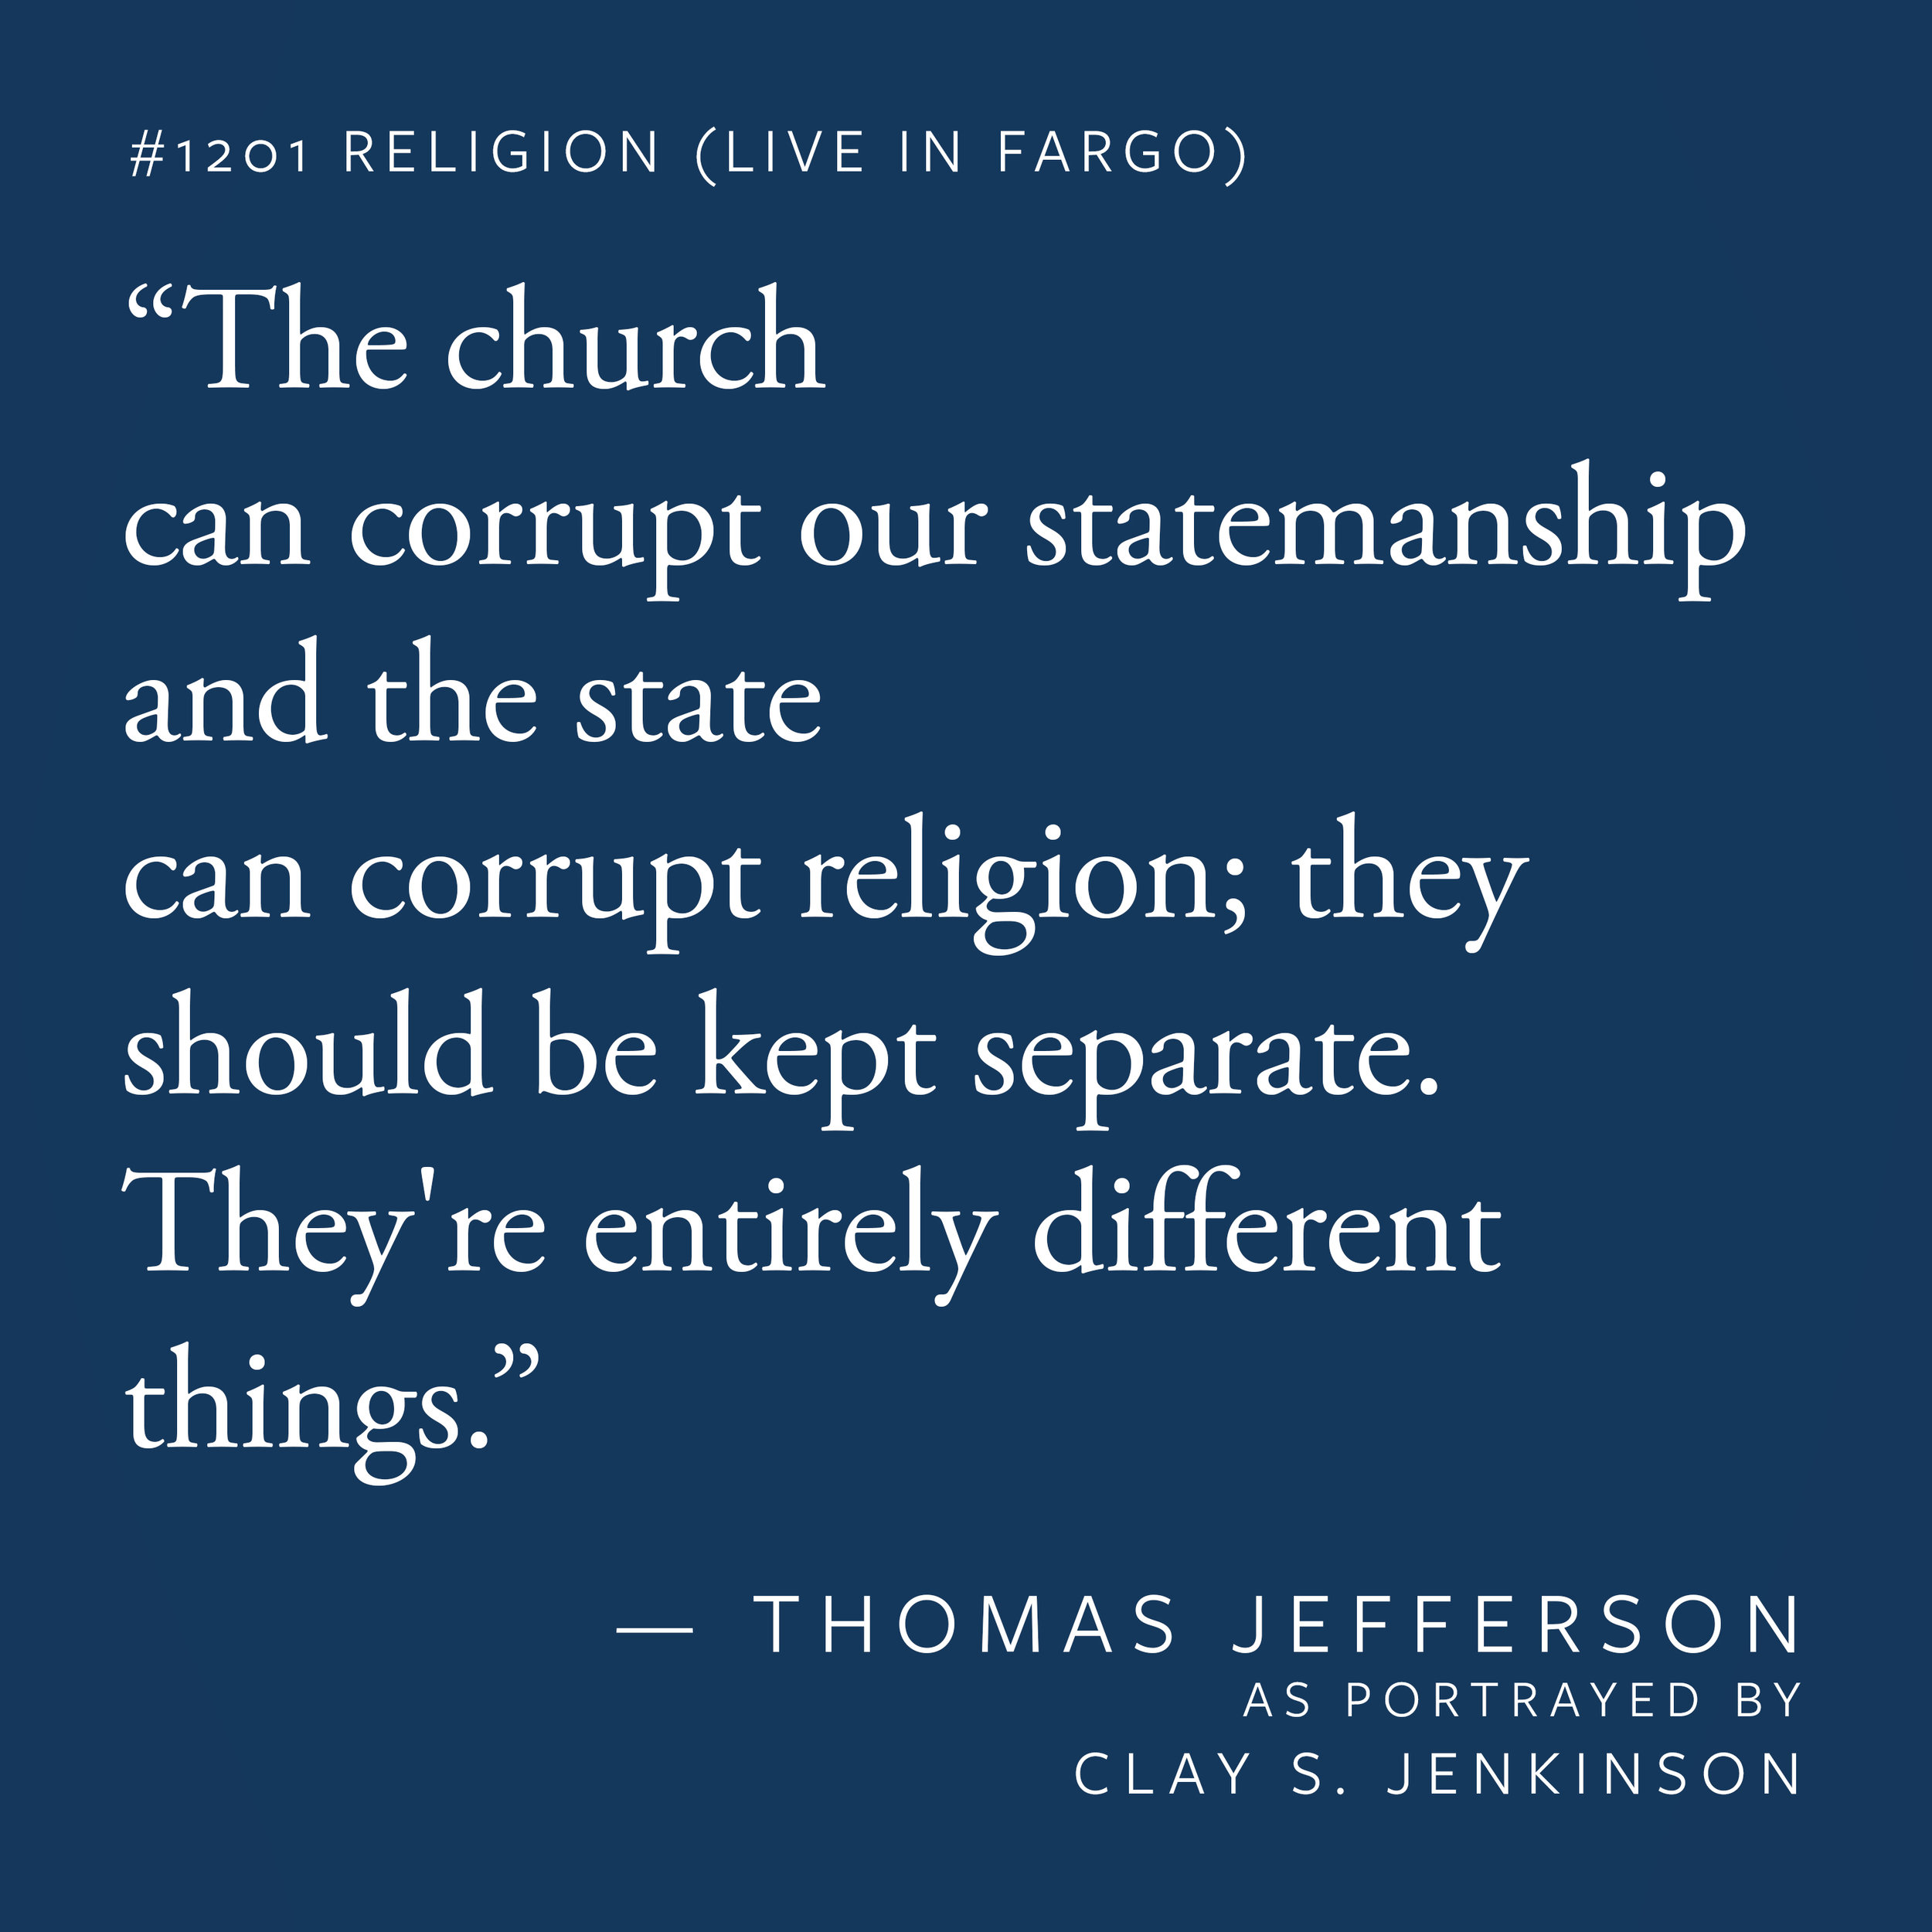 """""""The church can corrupt our statemanship and the state can corrupt religion; they should be kept separate. They're entirely different things."""""""